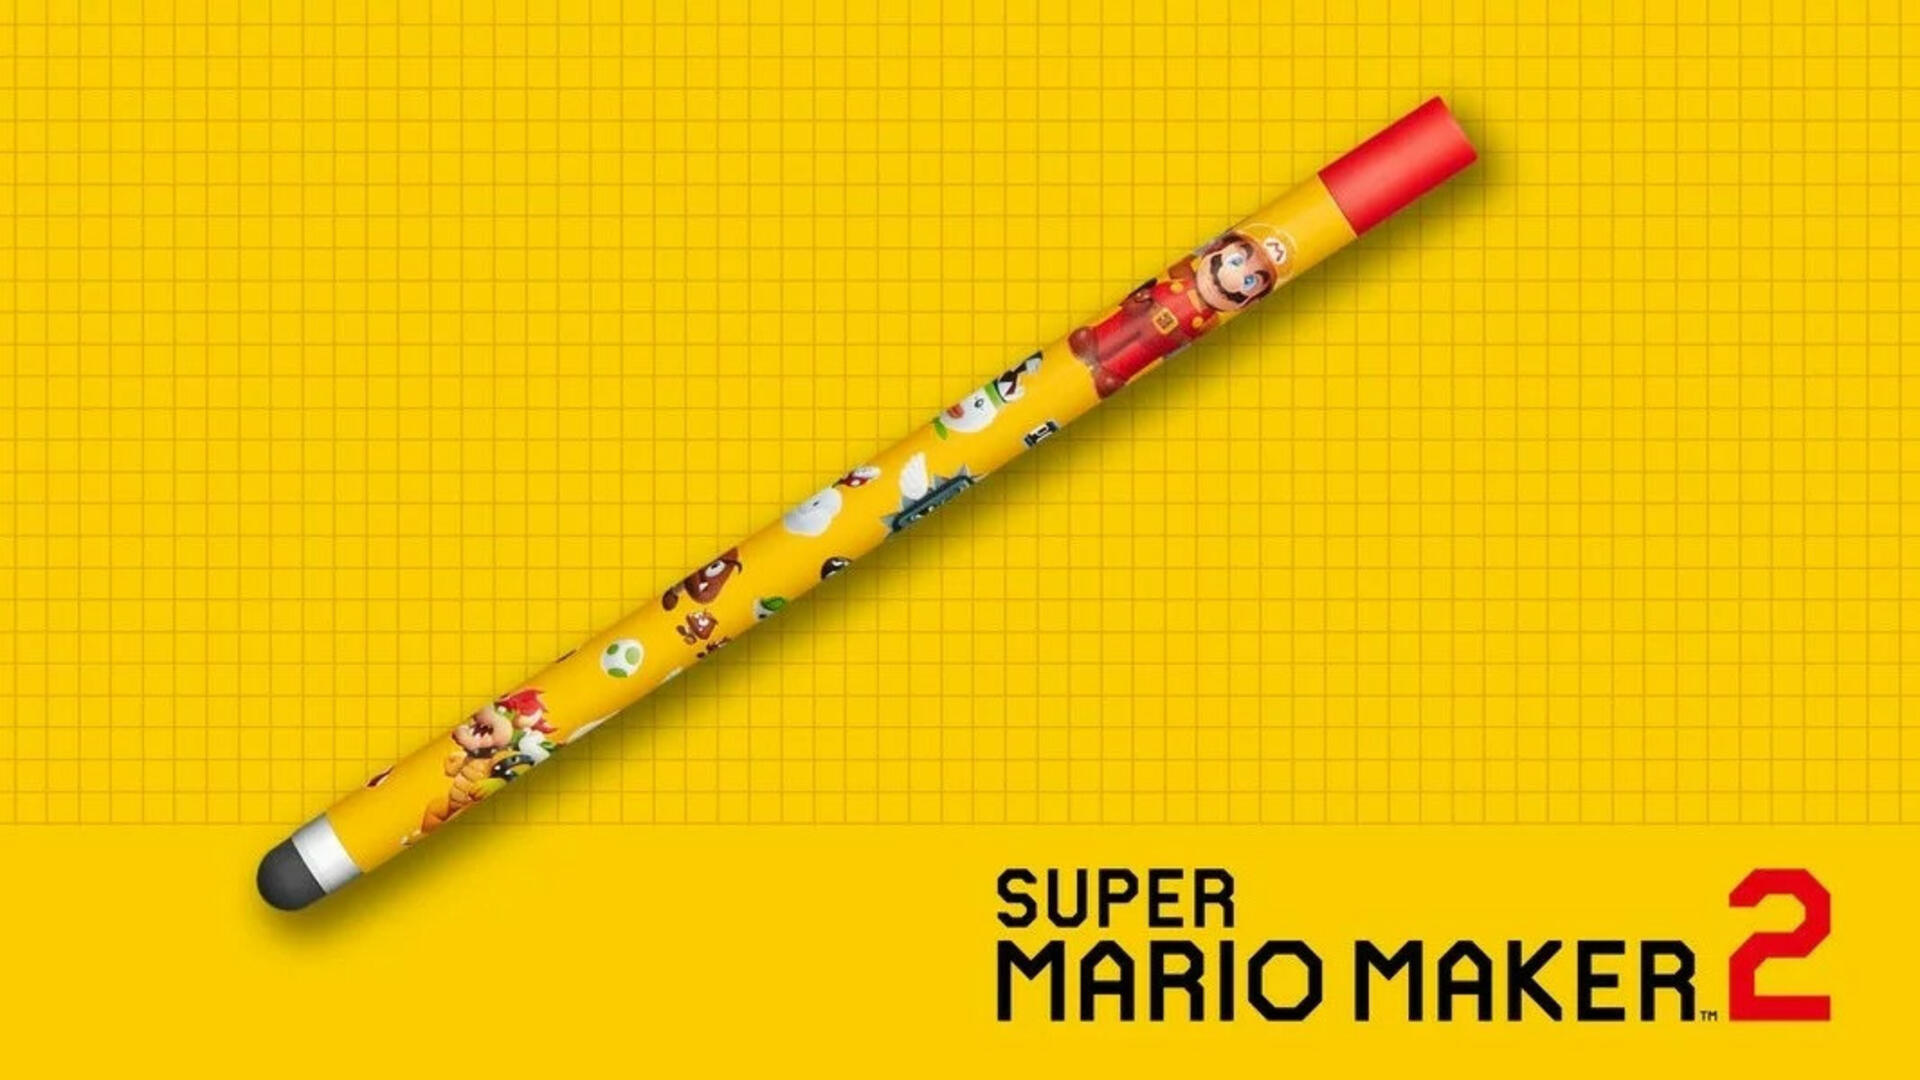 Super Mario Maker 2 Stylus Only Announced for Japan and Europe So Far